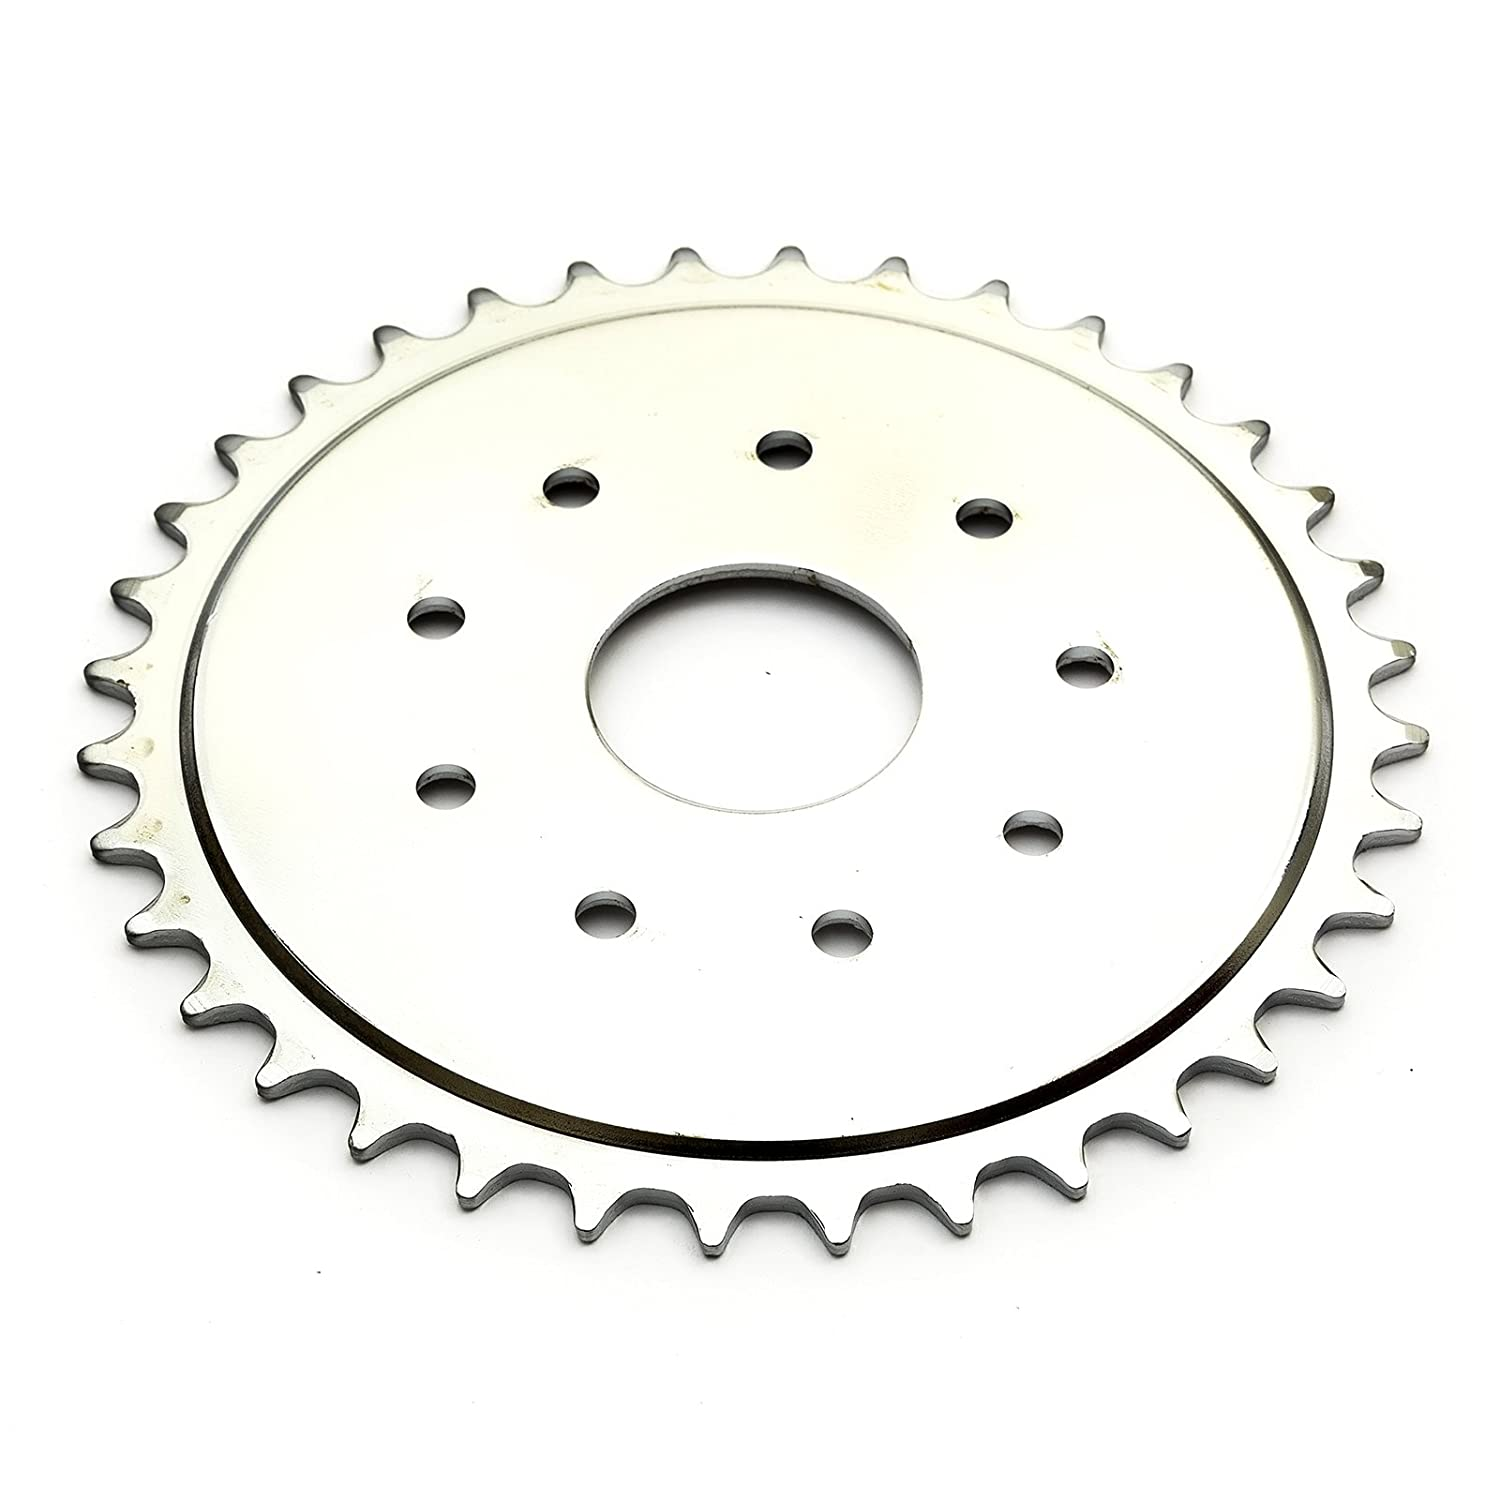 36T Driven Sprocket 60cc 80cc Petrol Gas Motorised Bicycle Engine Conversion Kit PetrolScooter